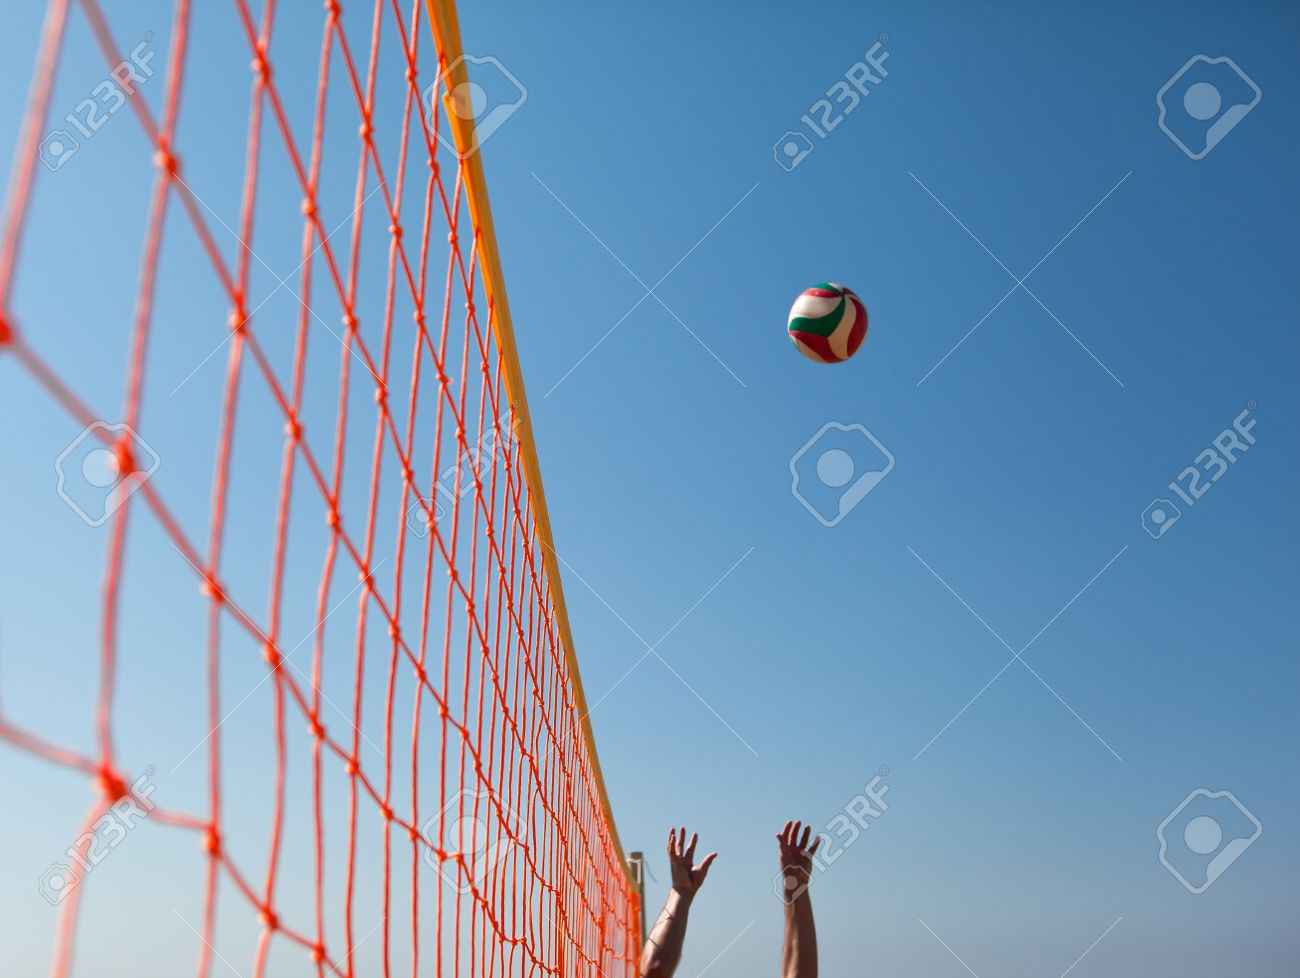 Volleyball ball over net stock photo. Image of sphere 62200542.